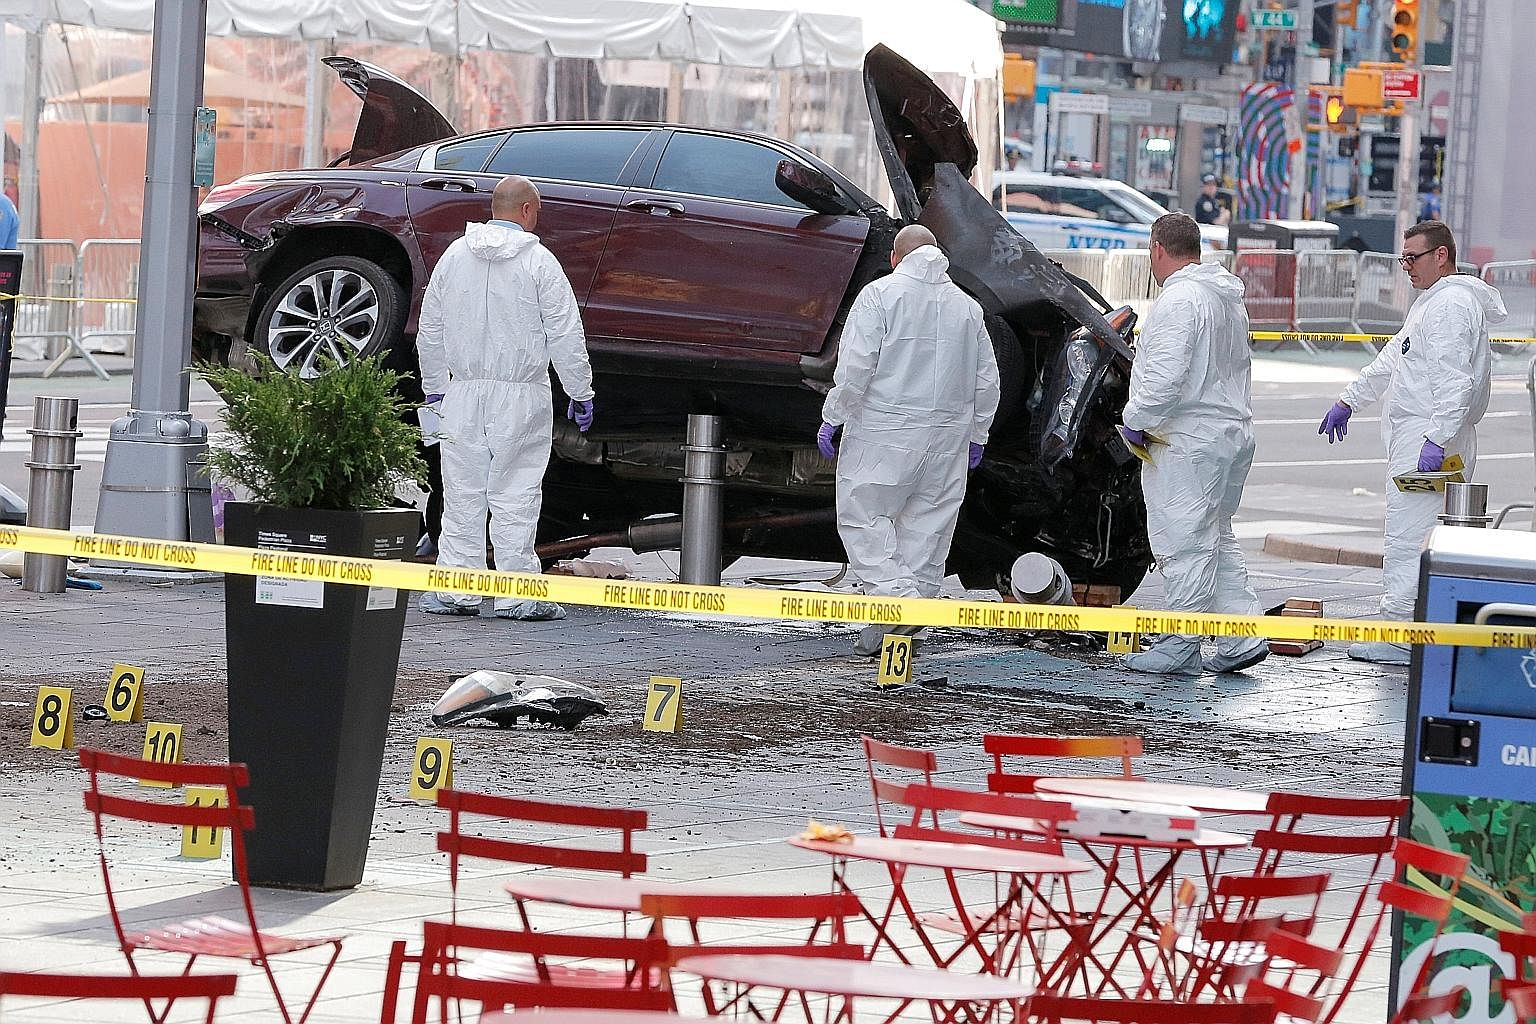 Richard Rojas, 26, a navy veteran from the Bronx, was high on synthetic marijuana when he went on his rampage on Thursday, unidentified police sources told ABC News. Rojas drove his Honda Accord at speed on the sidewalk for more than three city block